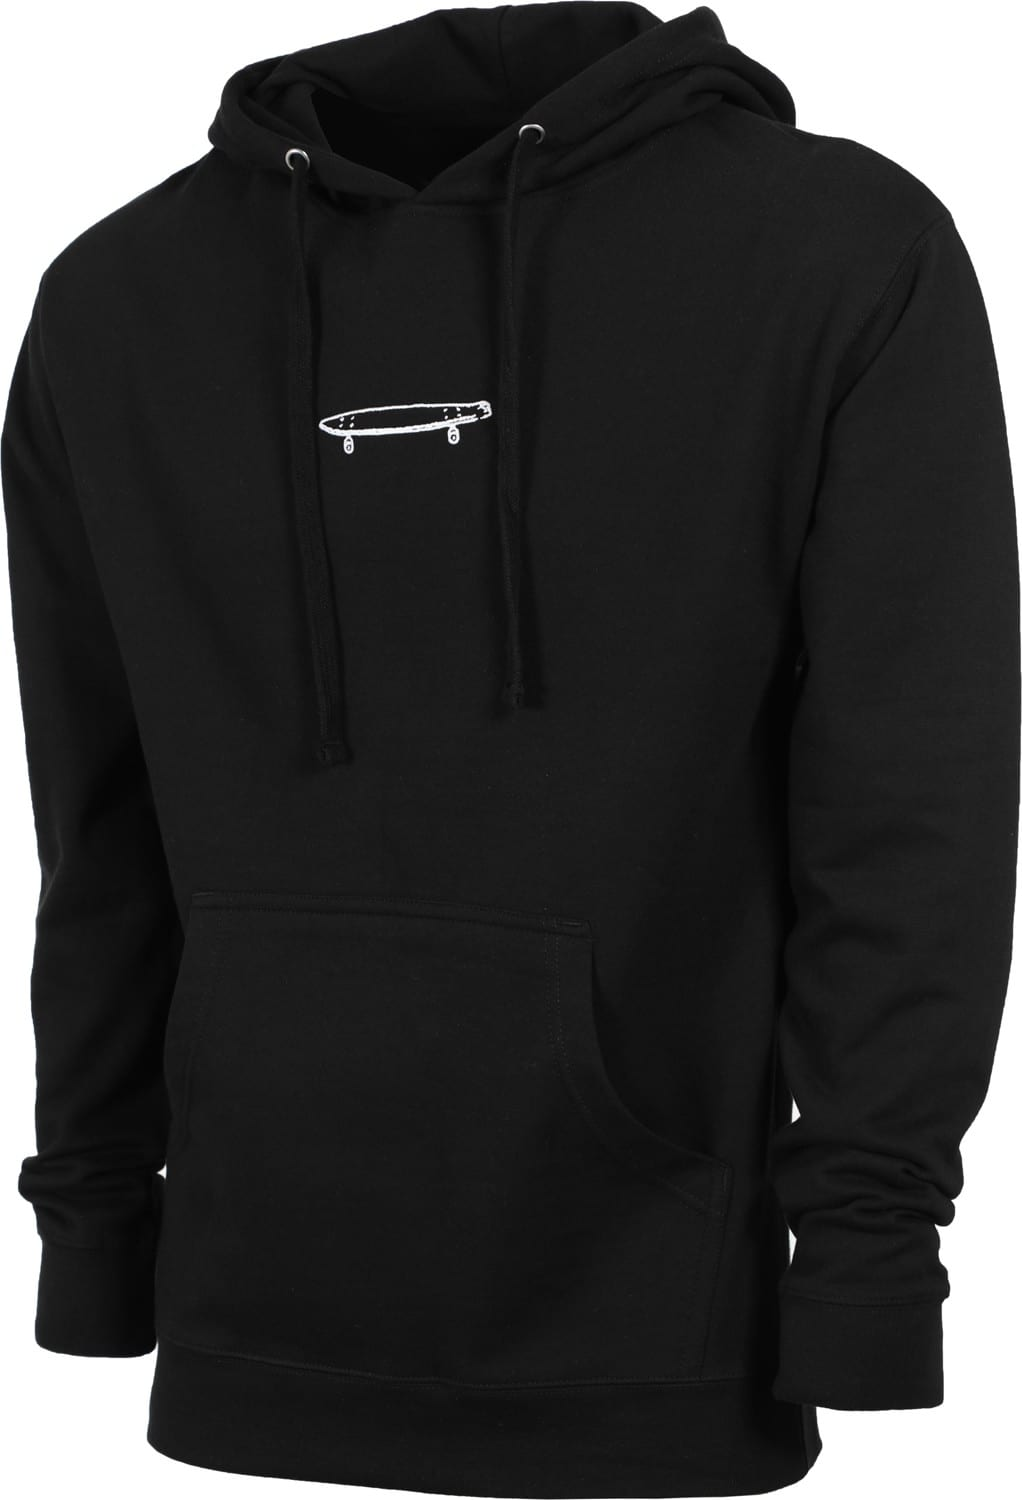 Crailtap Mid Crail Emb Pullover Hoodie